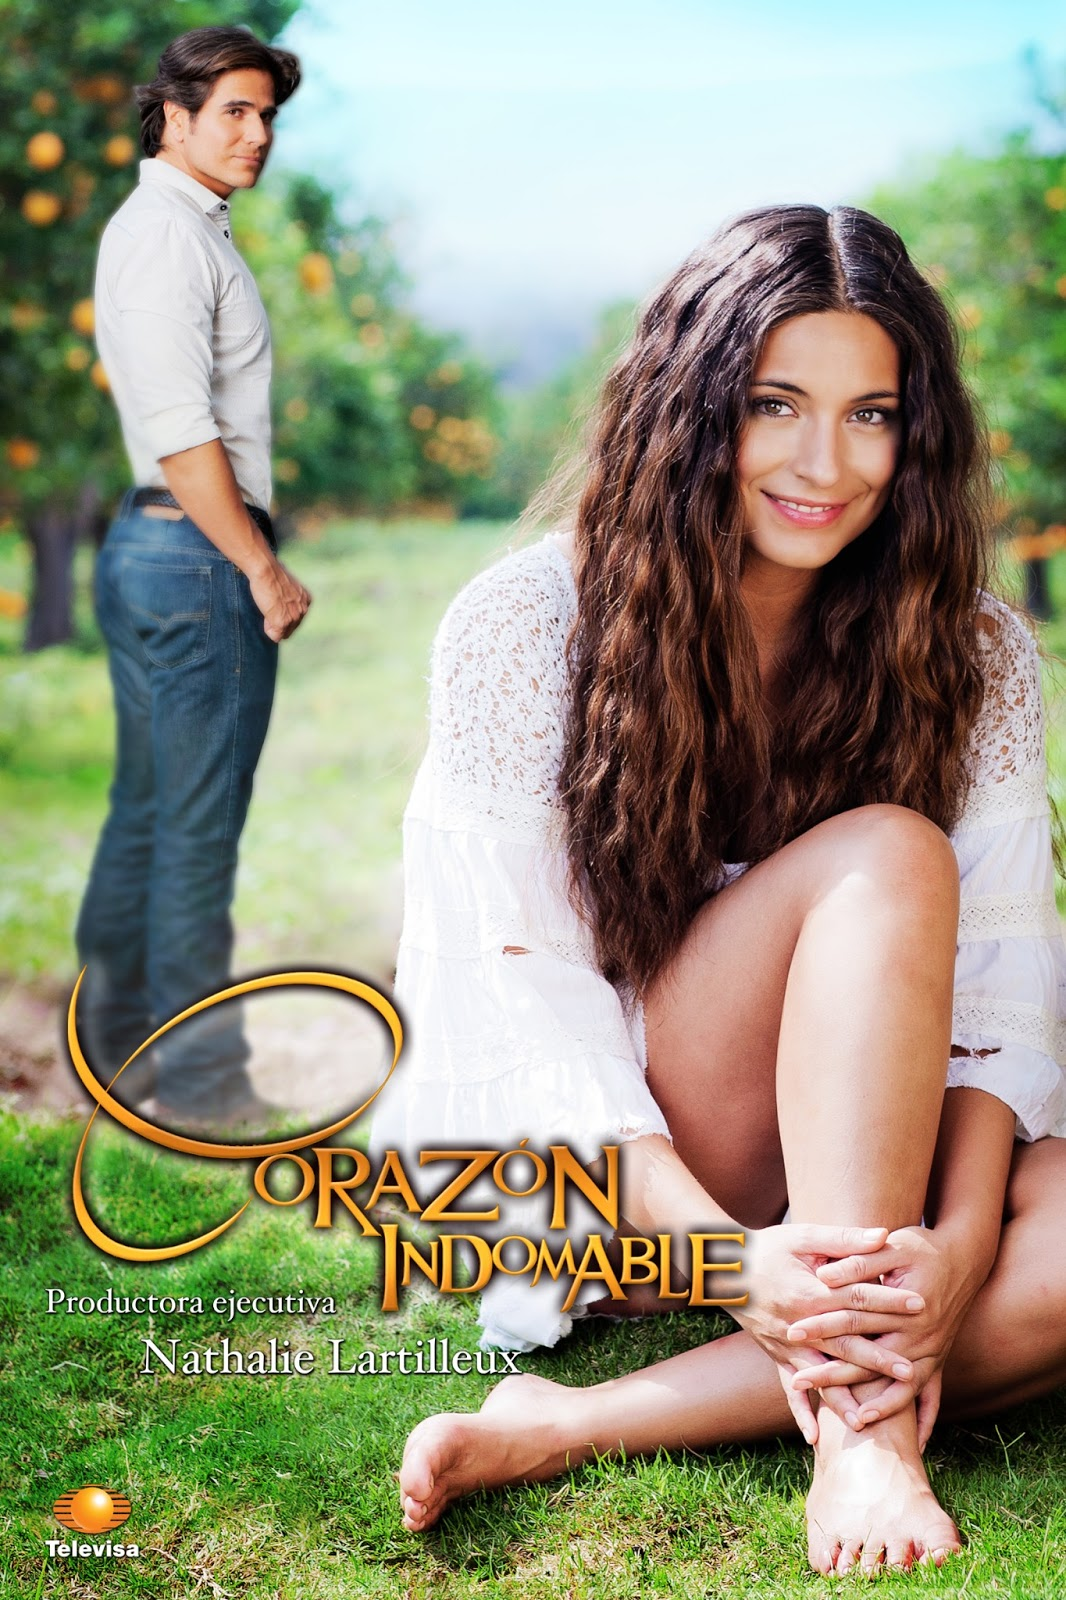 Corazon Indomable poster (1)